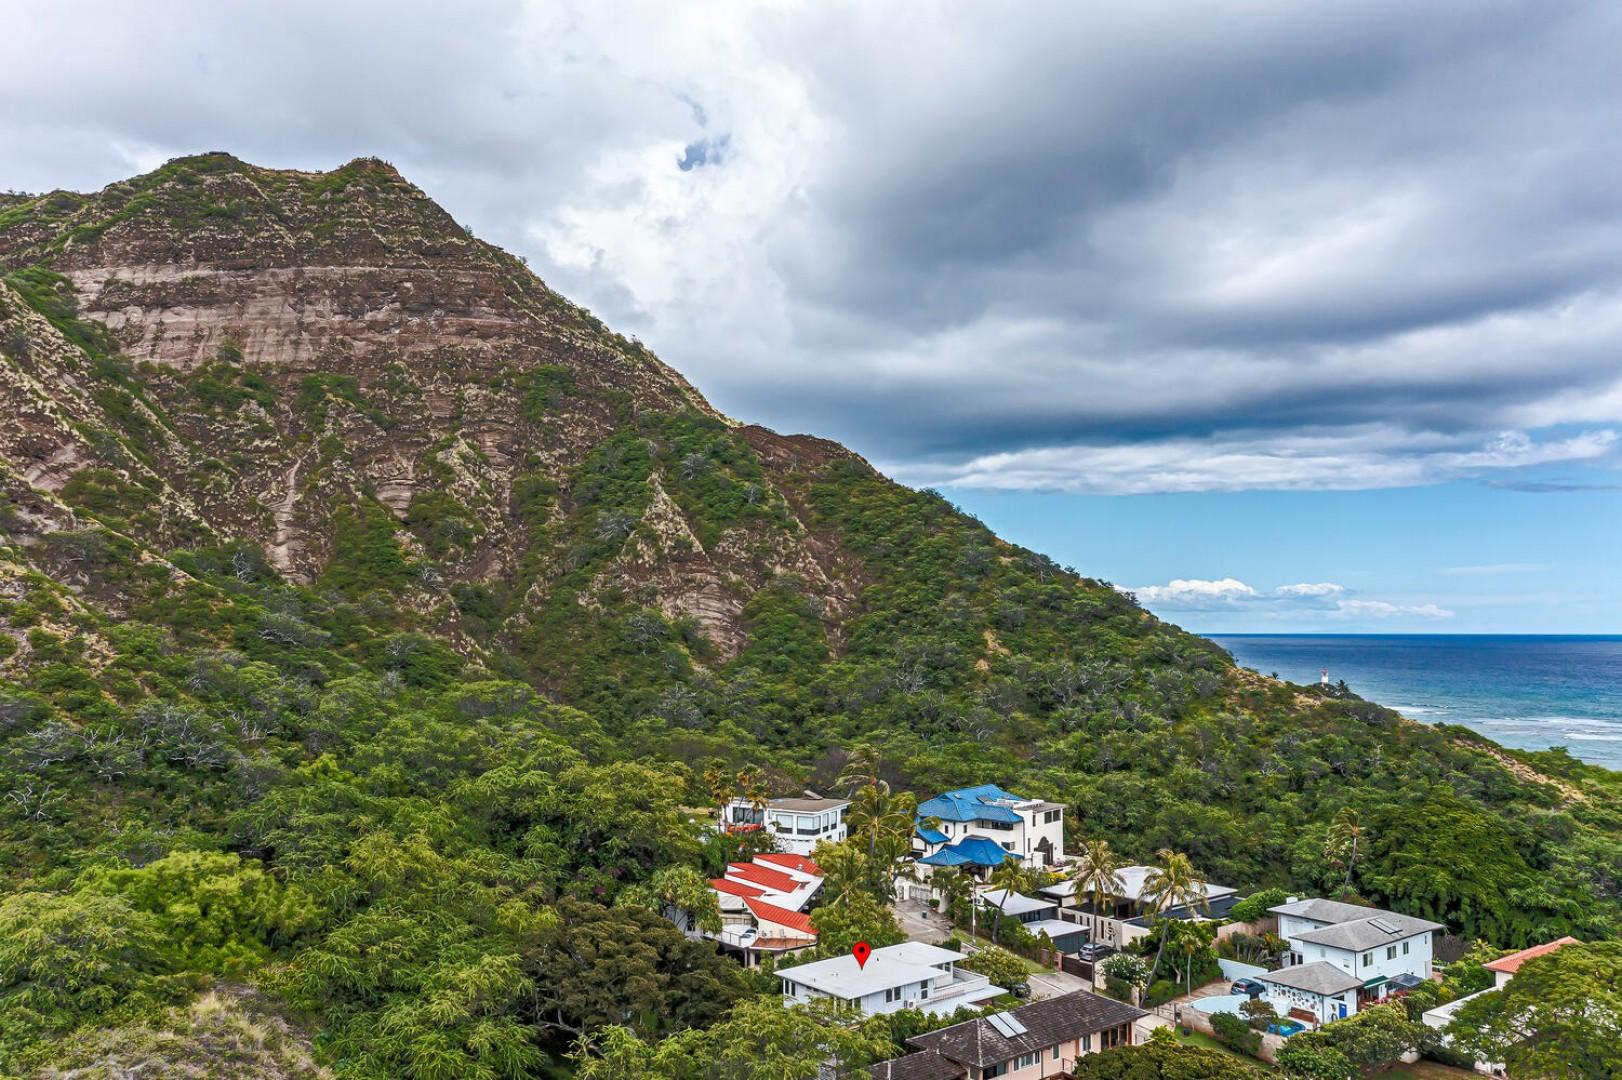 Located in one of the most exclusive neighborhoods on the island, on the slopes of Diamond Head